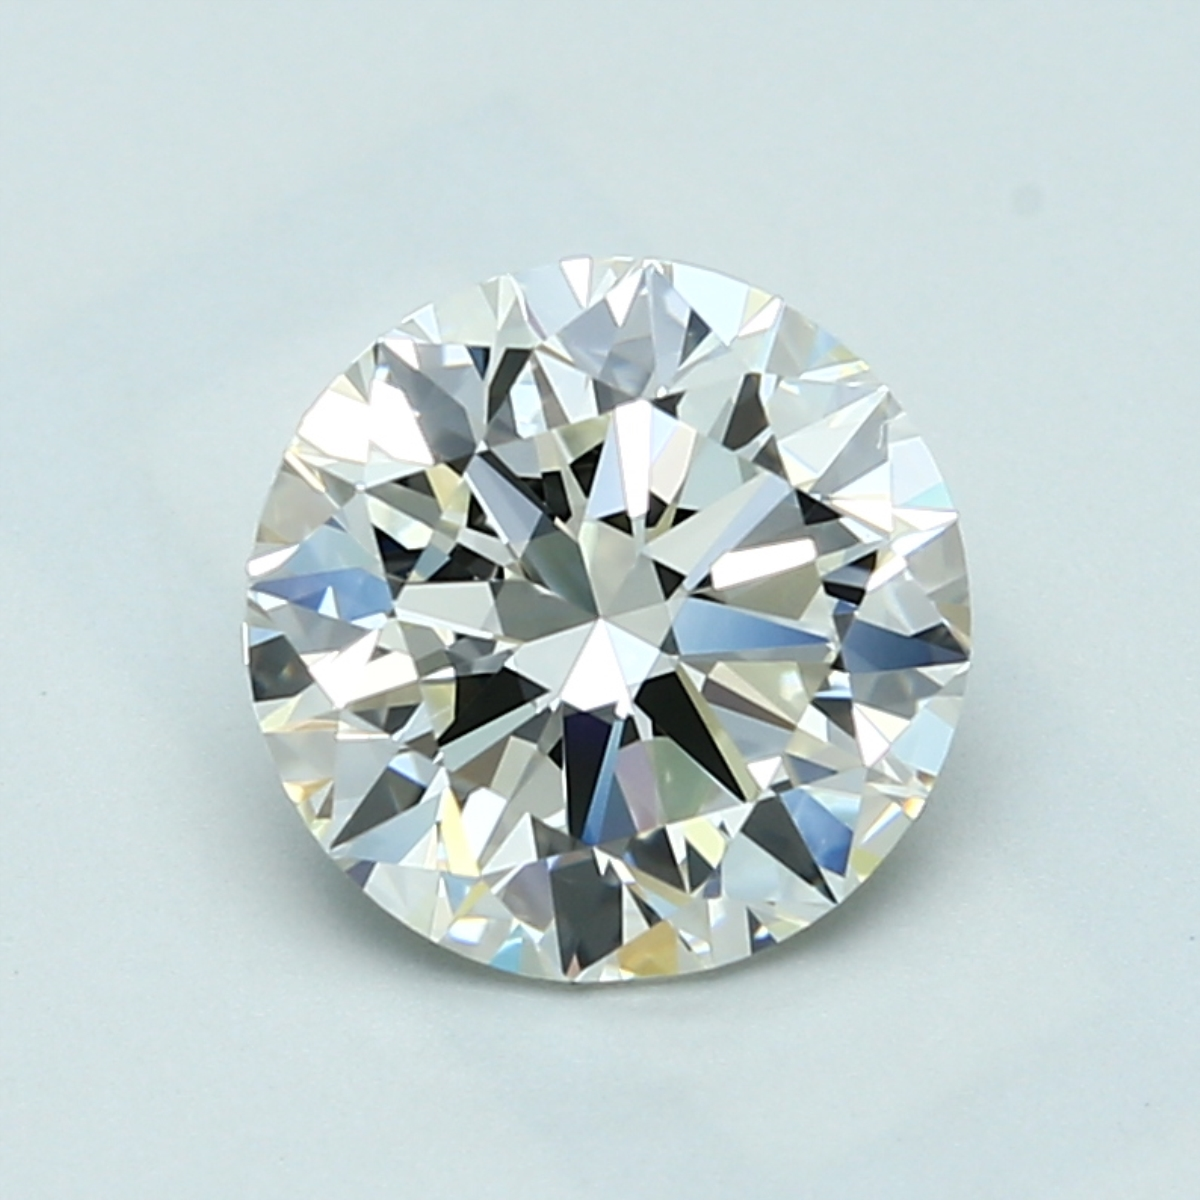 2 Carat J Color Diamond